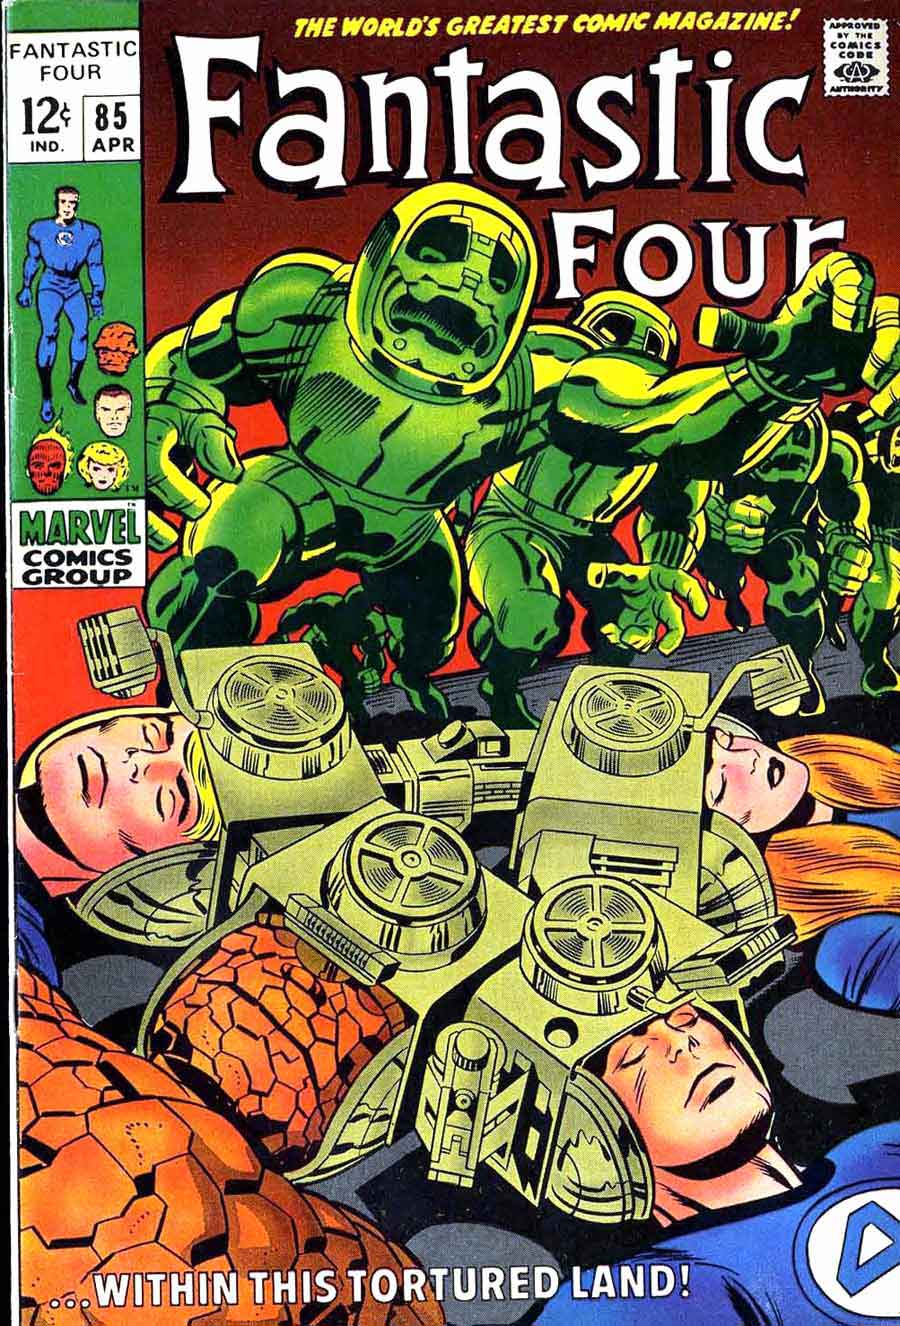 Fantastc Four v1 #84 marvel 1960s silver age comic book cover art by Jack Kirby